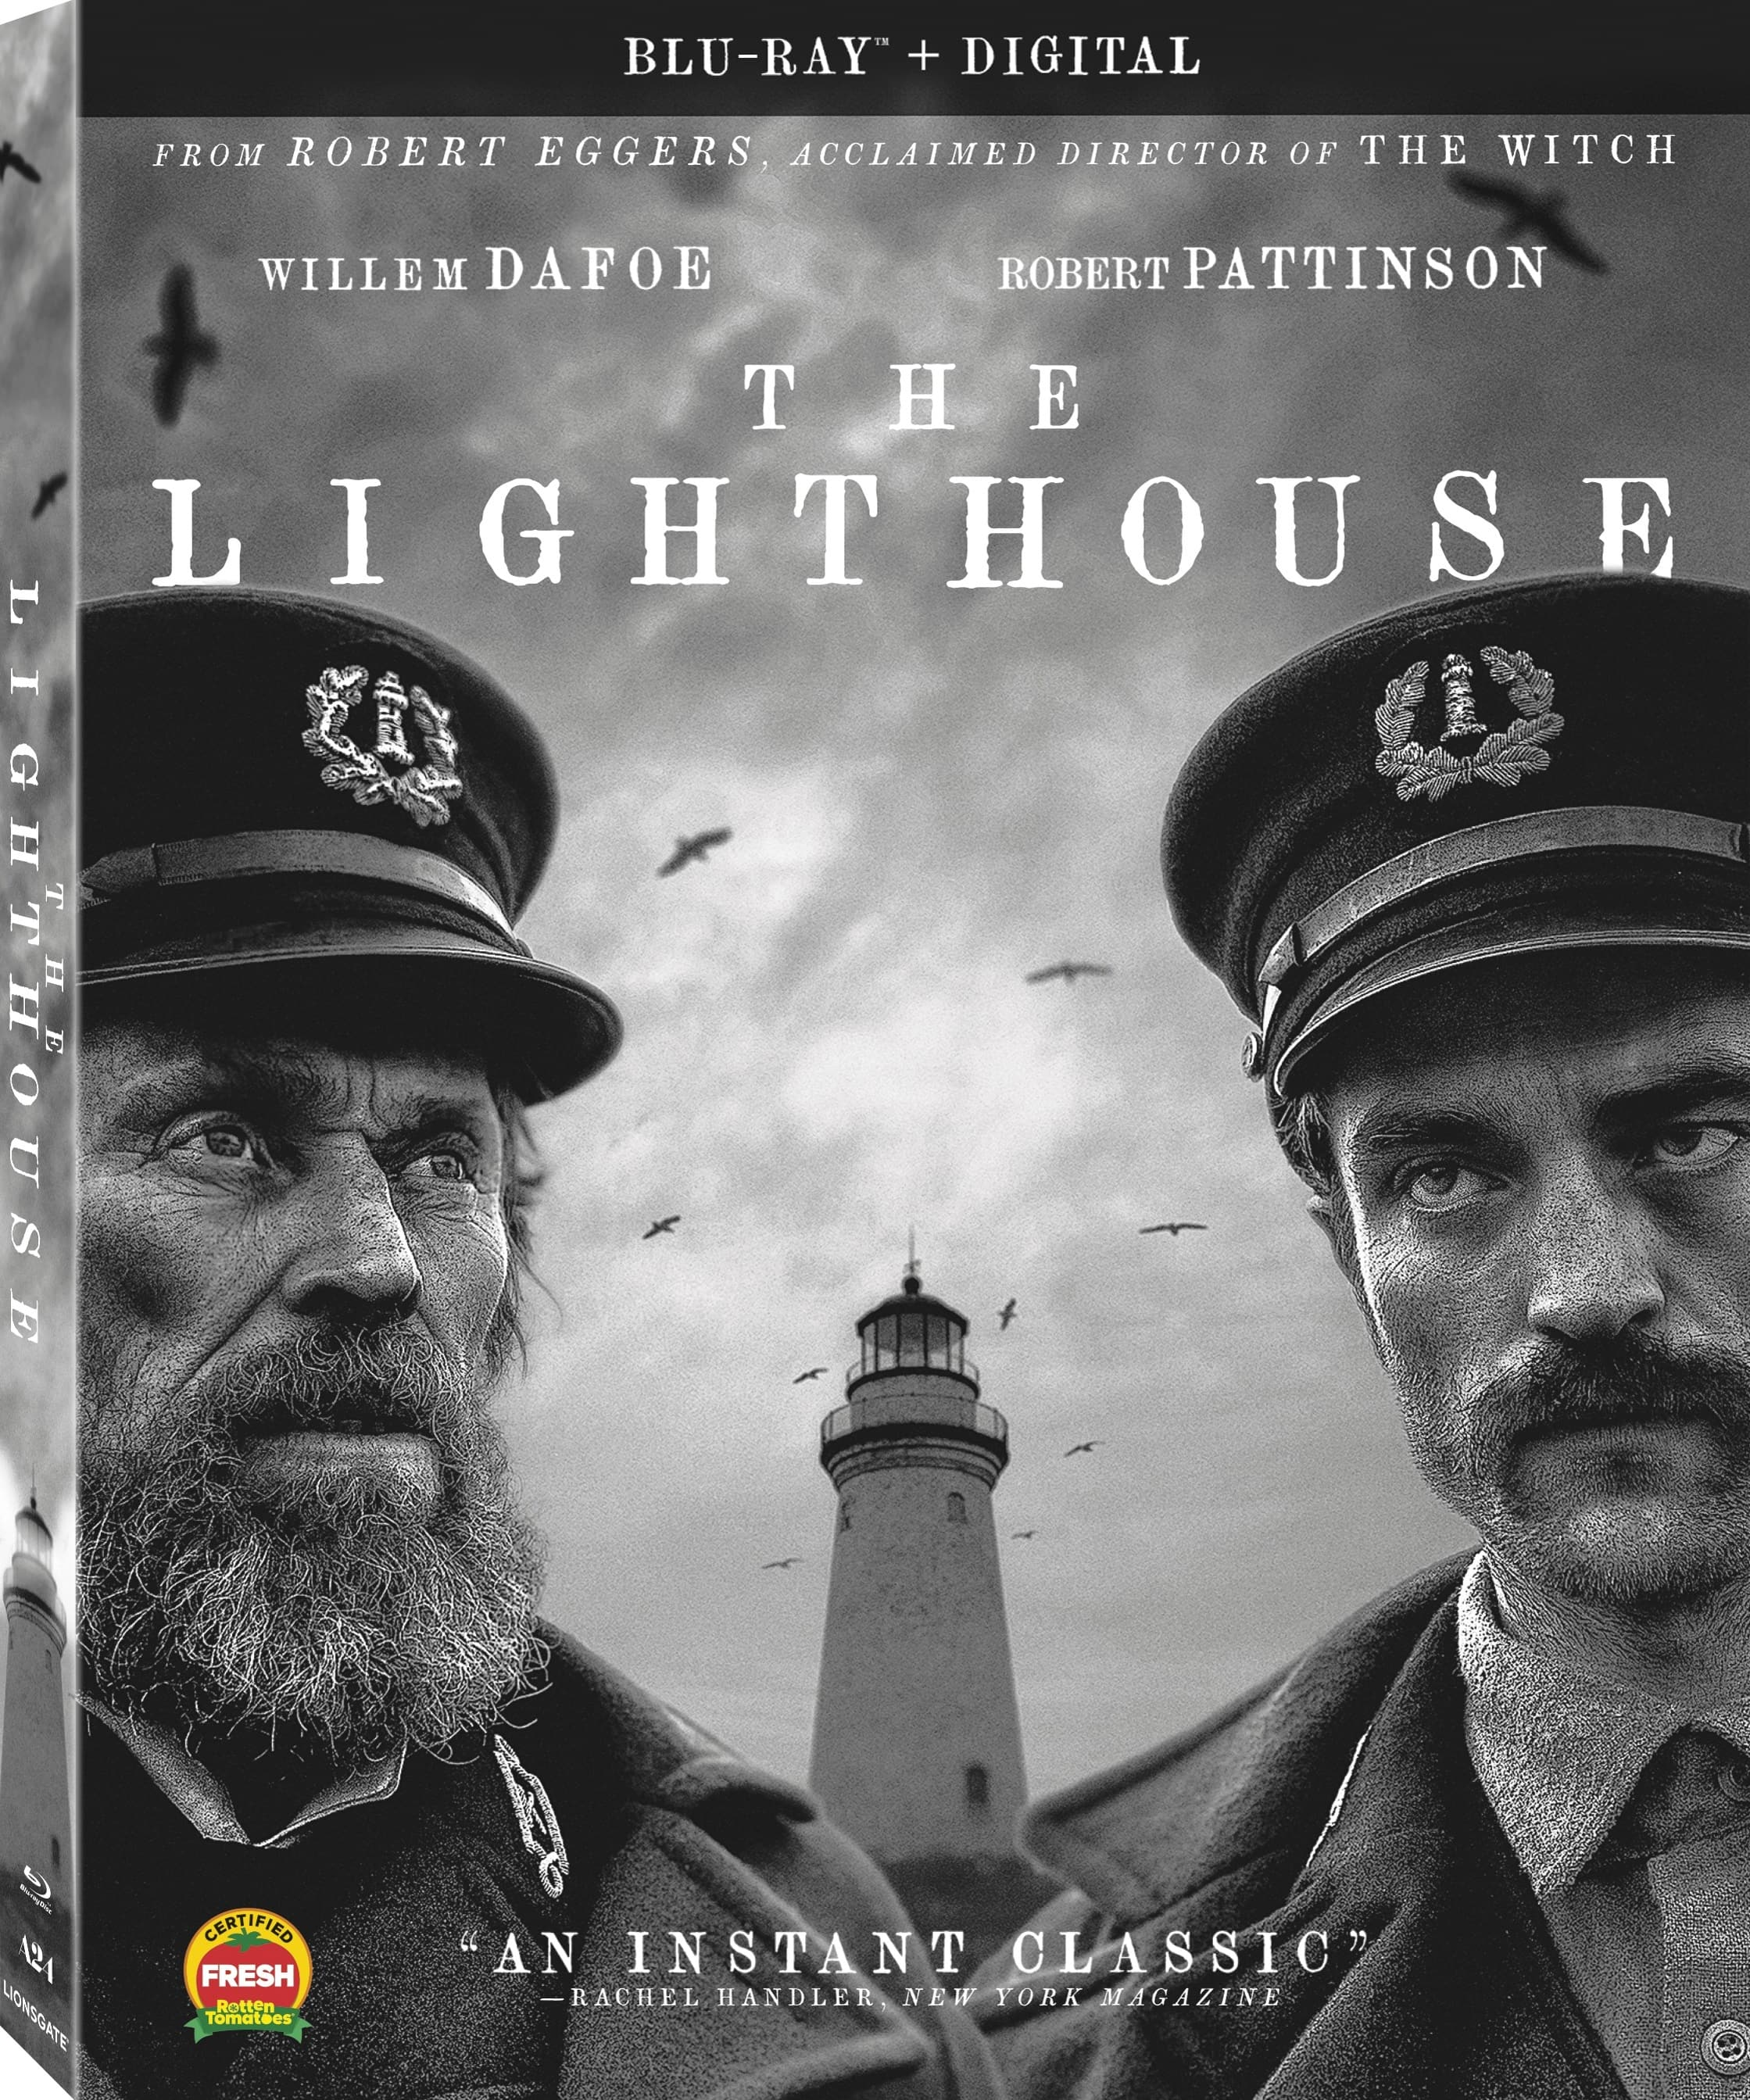 The Lighthouse (Blu-ray + Digital) $10 @ Target/Amazon